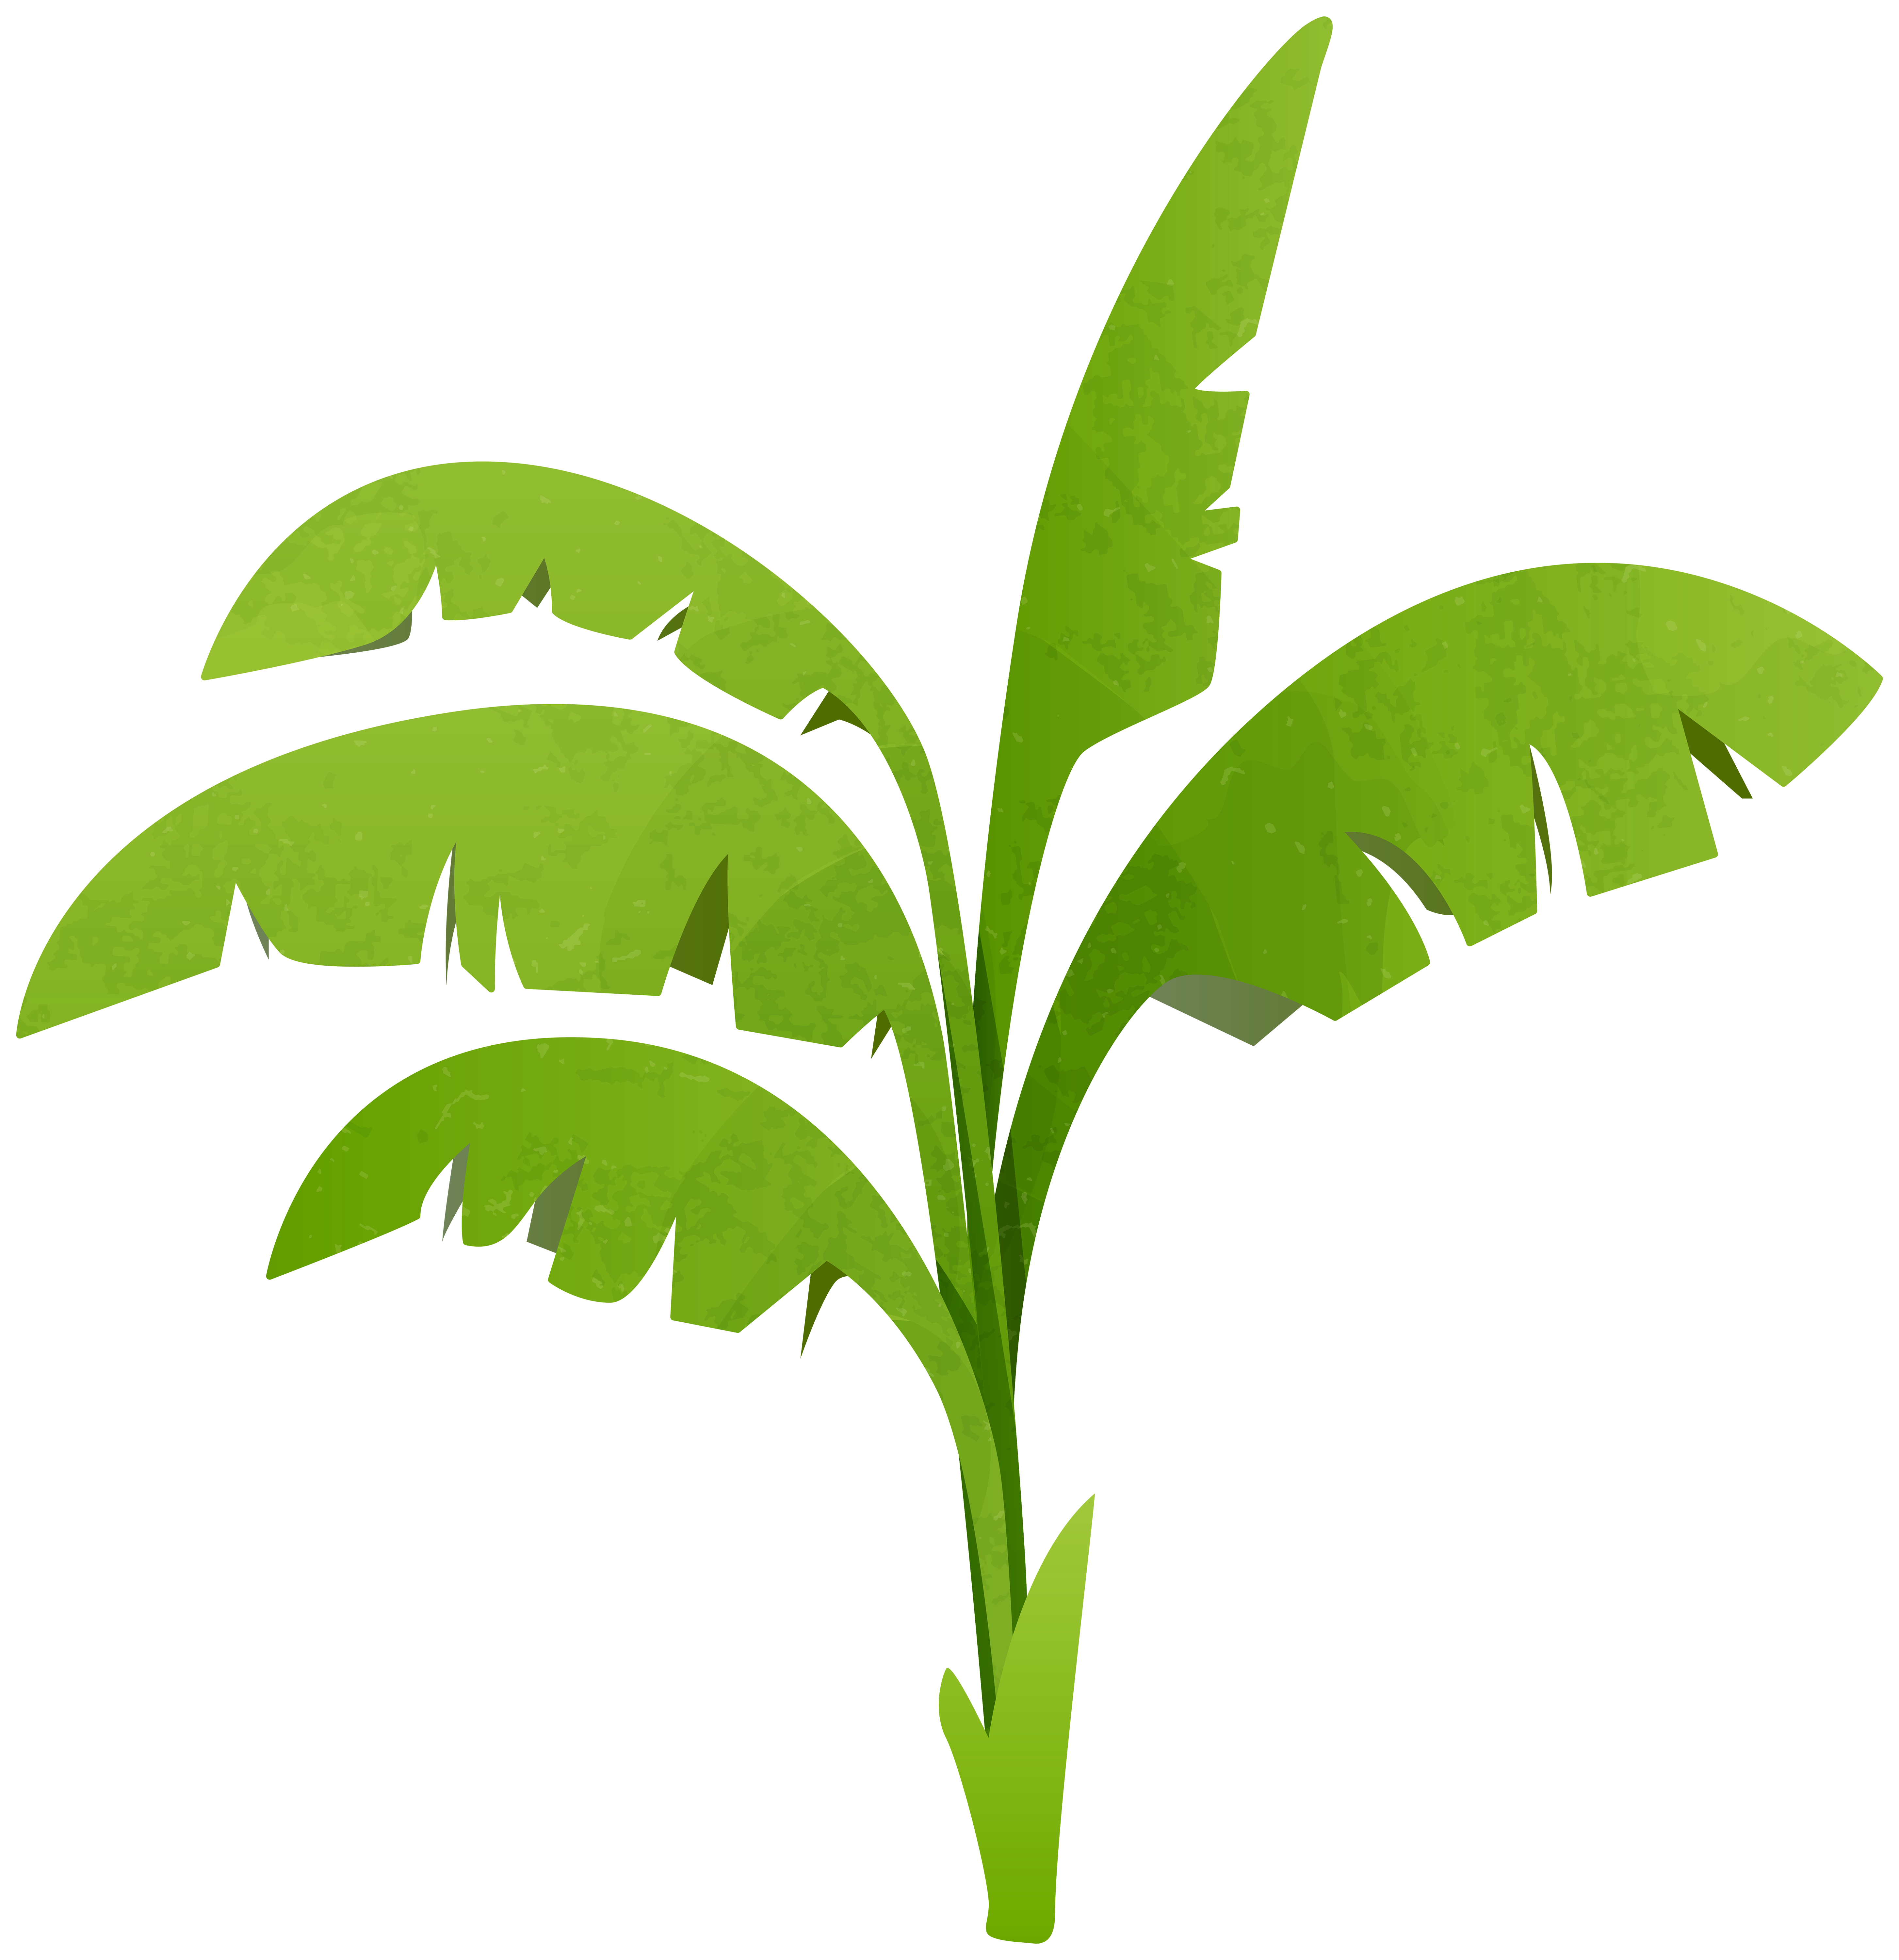 Plants Png Clipart - Alleghany Trees for Plant Transparent Png  299kxo